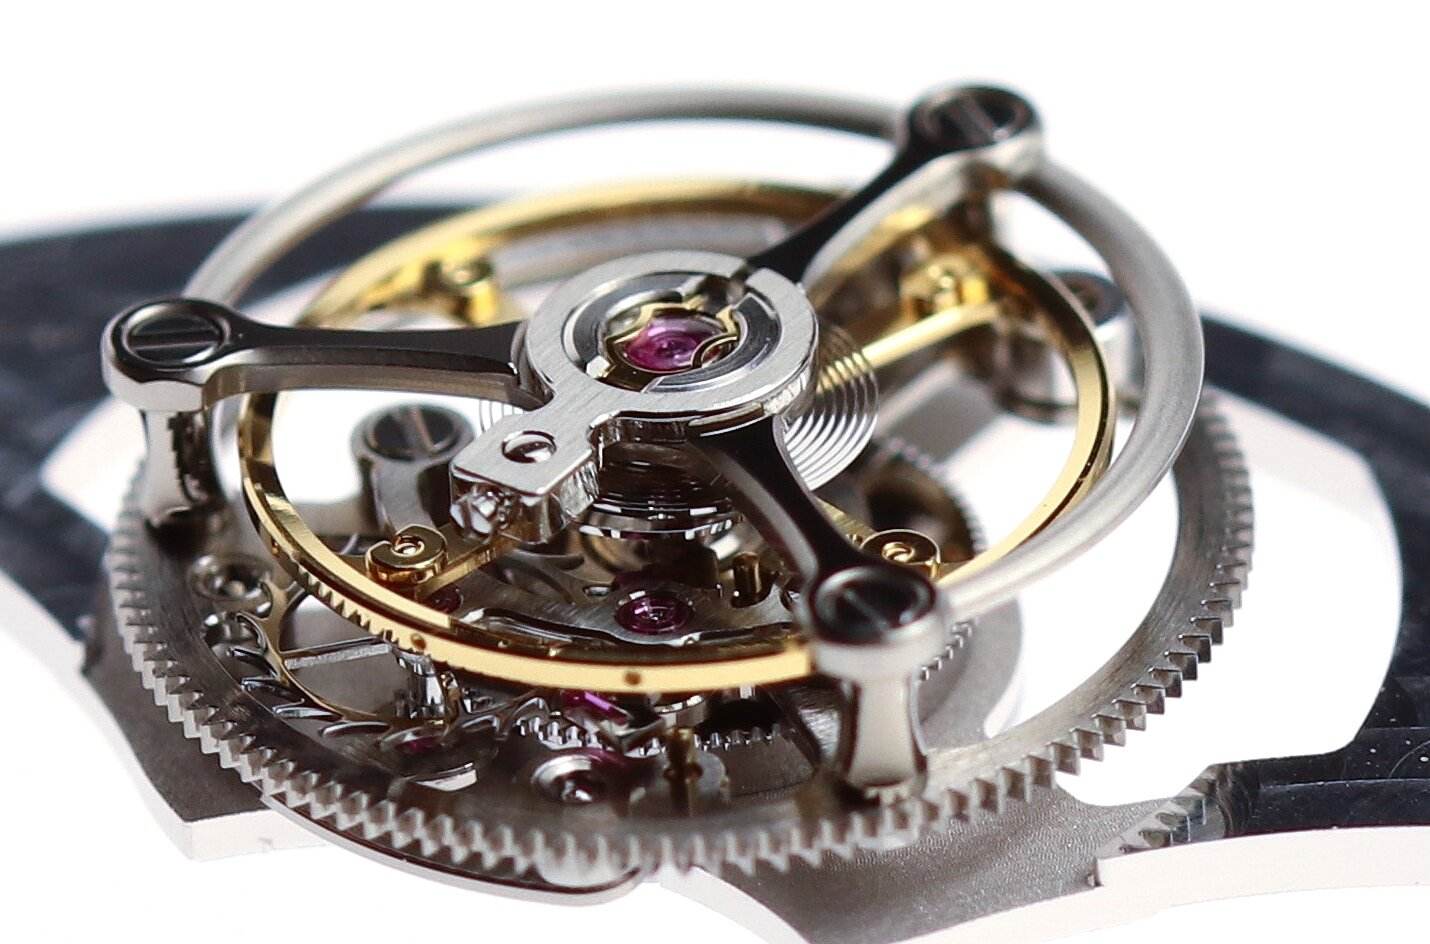 The assembled tourbillon cage separate from the movement.